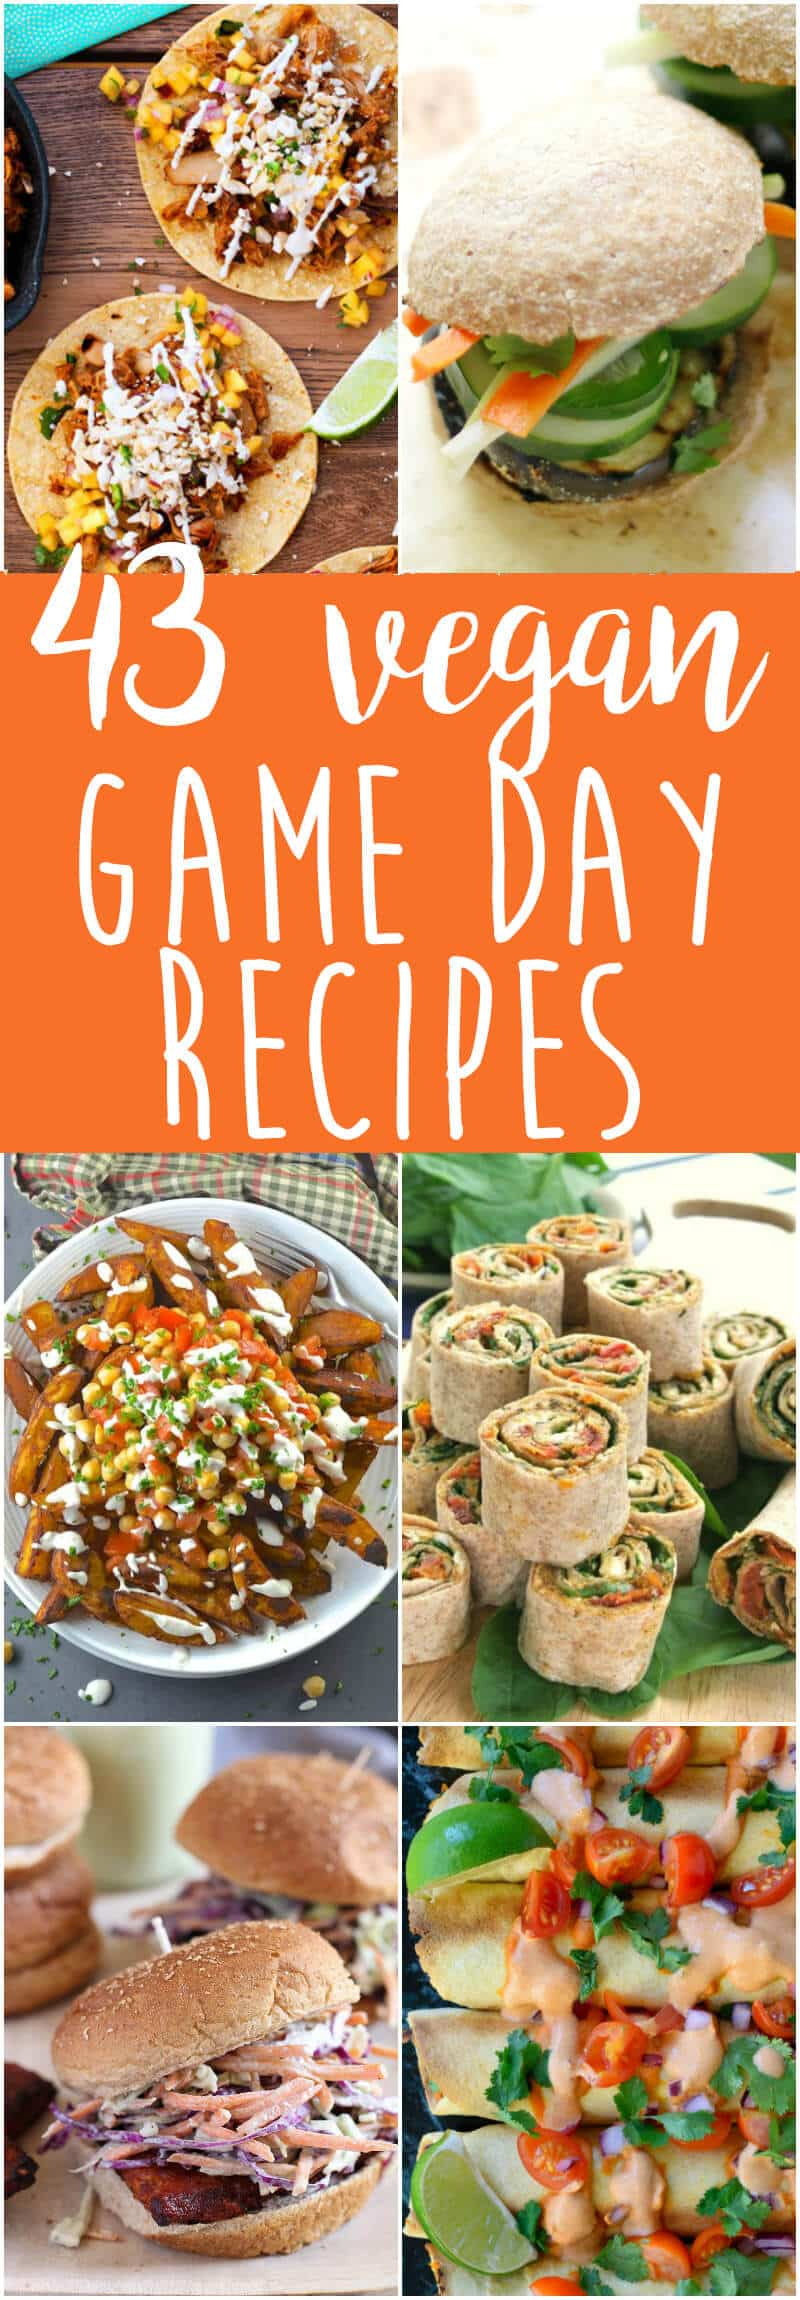 Vegan Game Day Food - from pizza to tacos to burgers to fries to nachos...get your game day appetizers / recipes here!